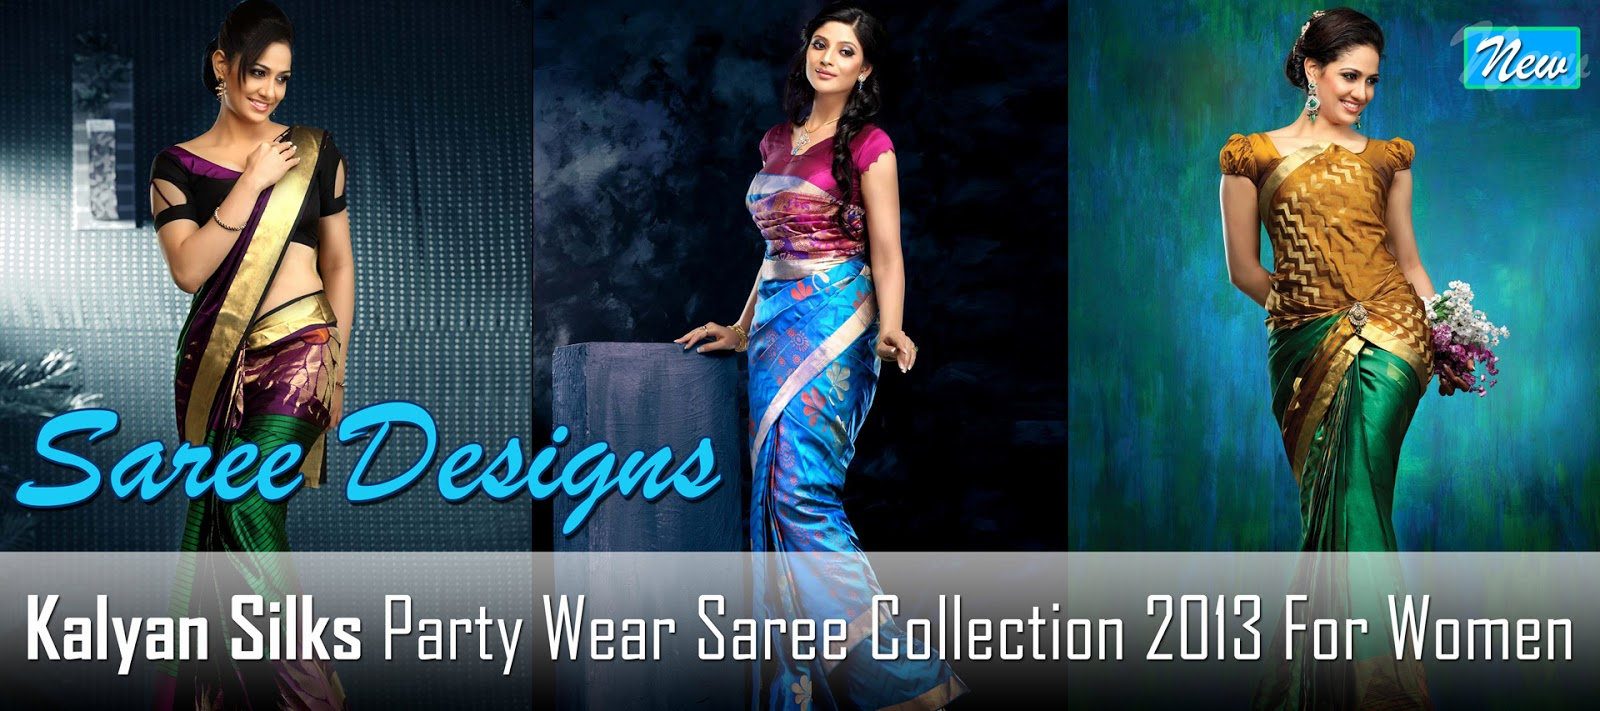 Kalyan Silks Saree's | Party Wear Saree Collection 2013 | Spring